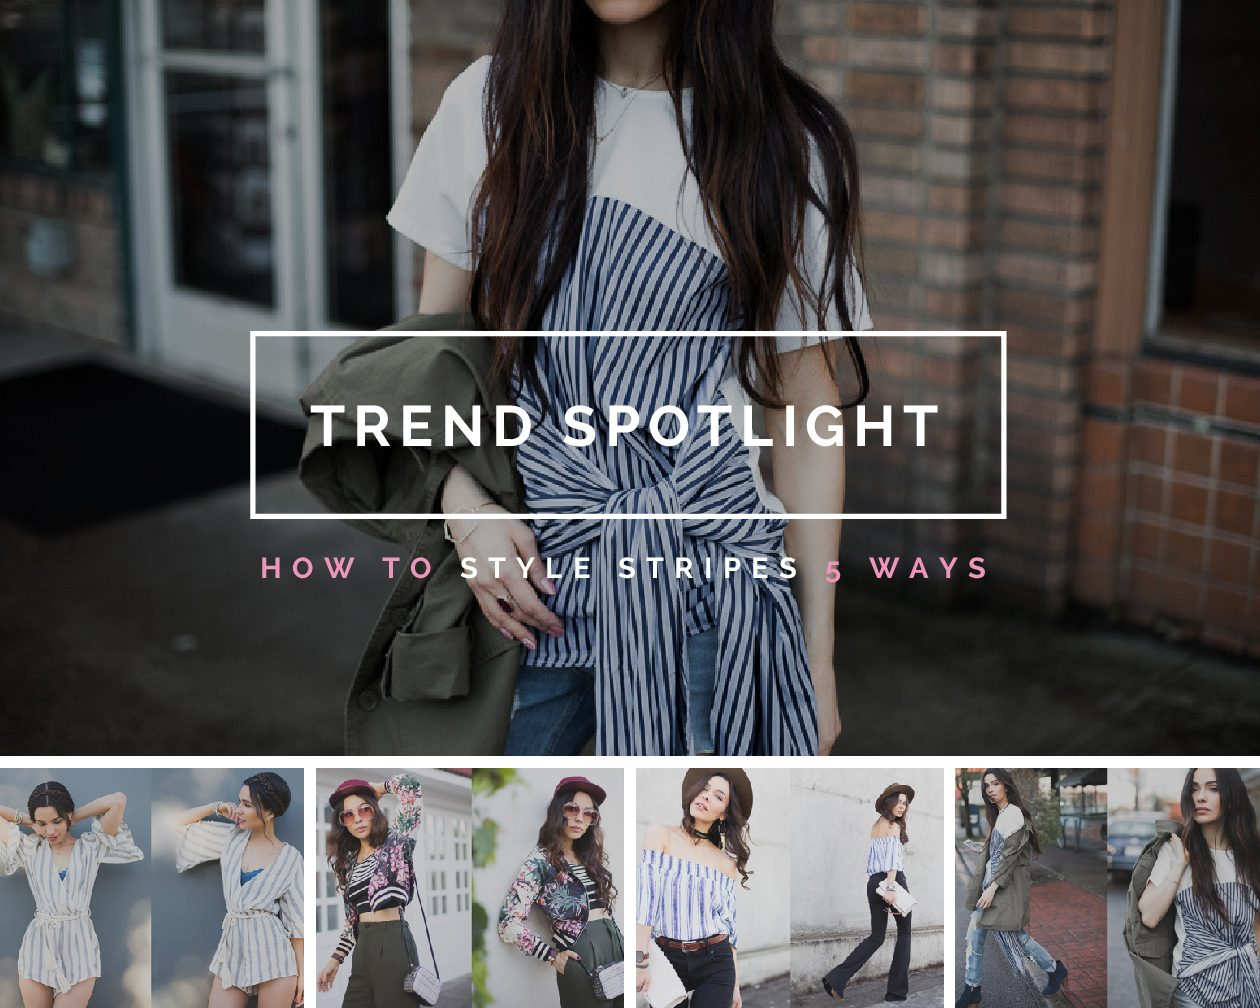 Trend Spotlight: 5 Ways to Wear Stripes